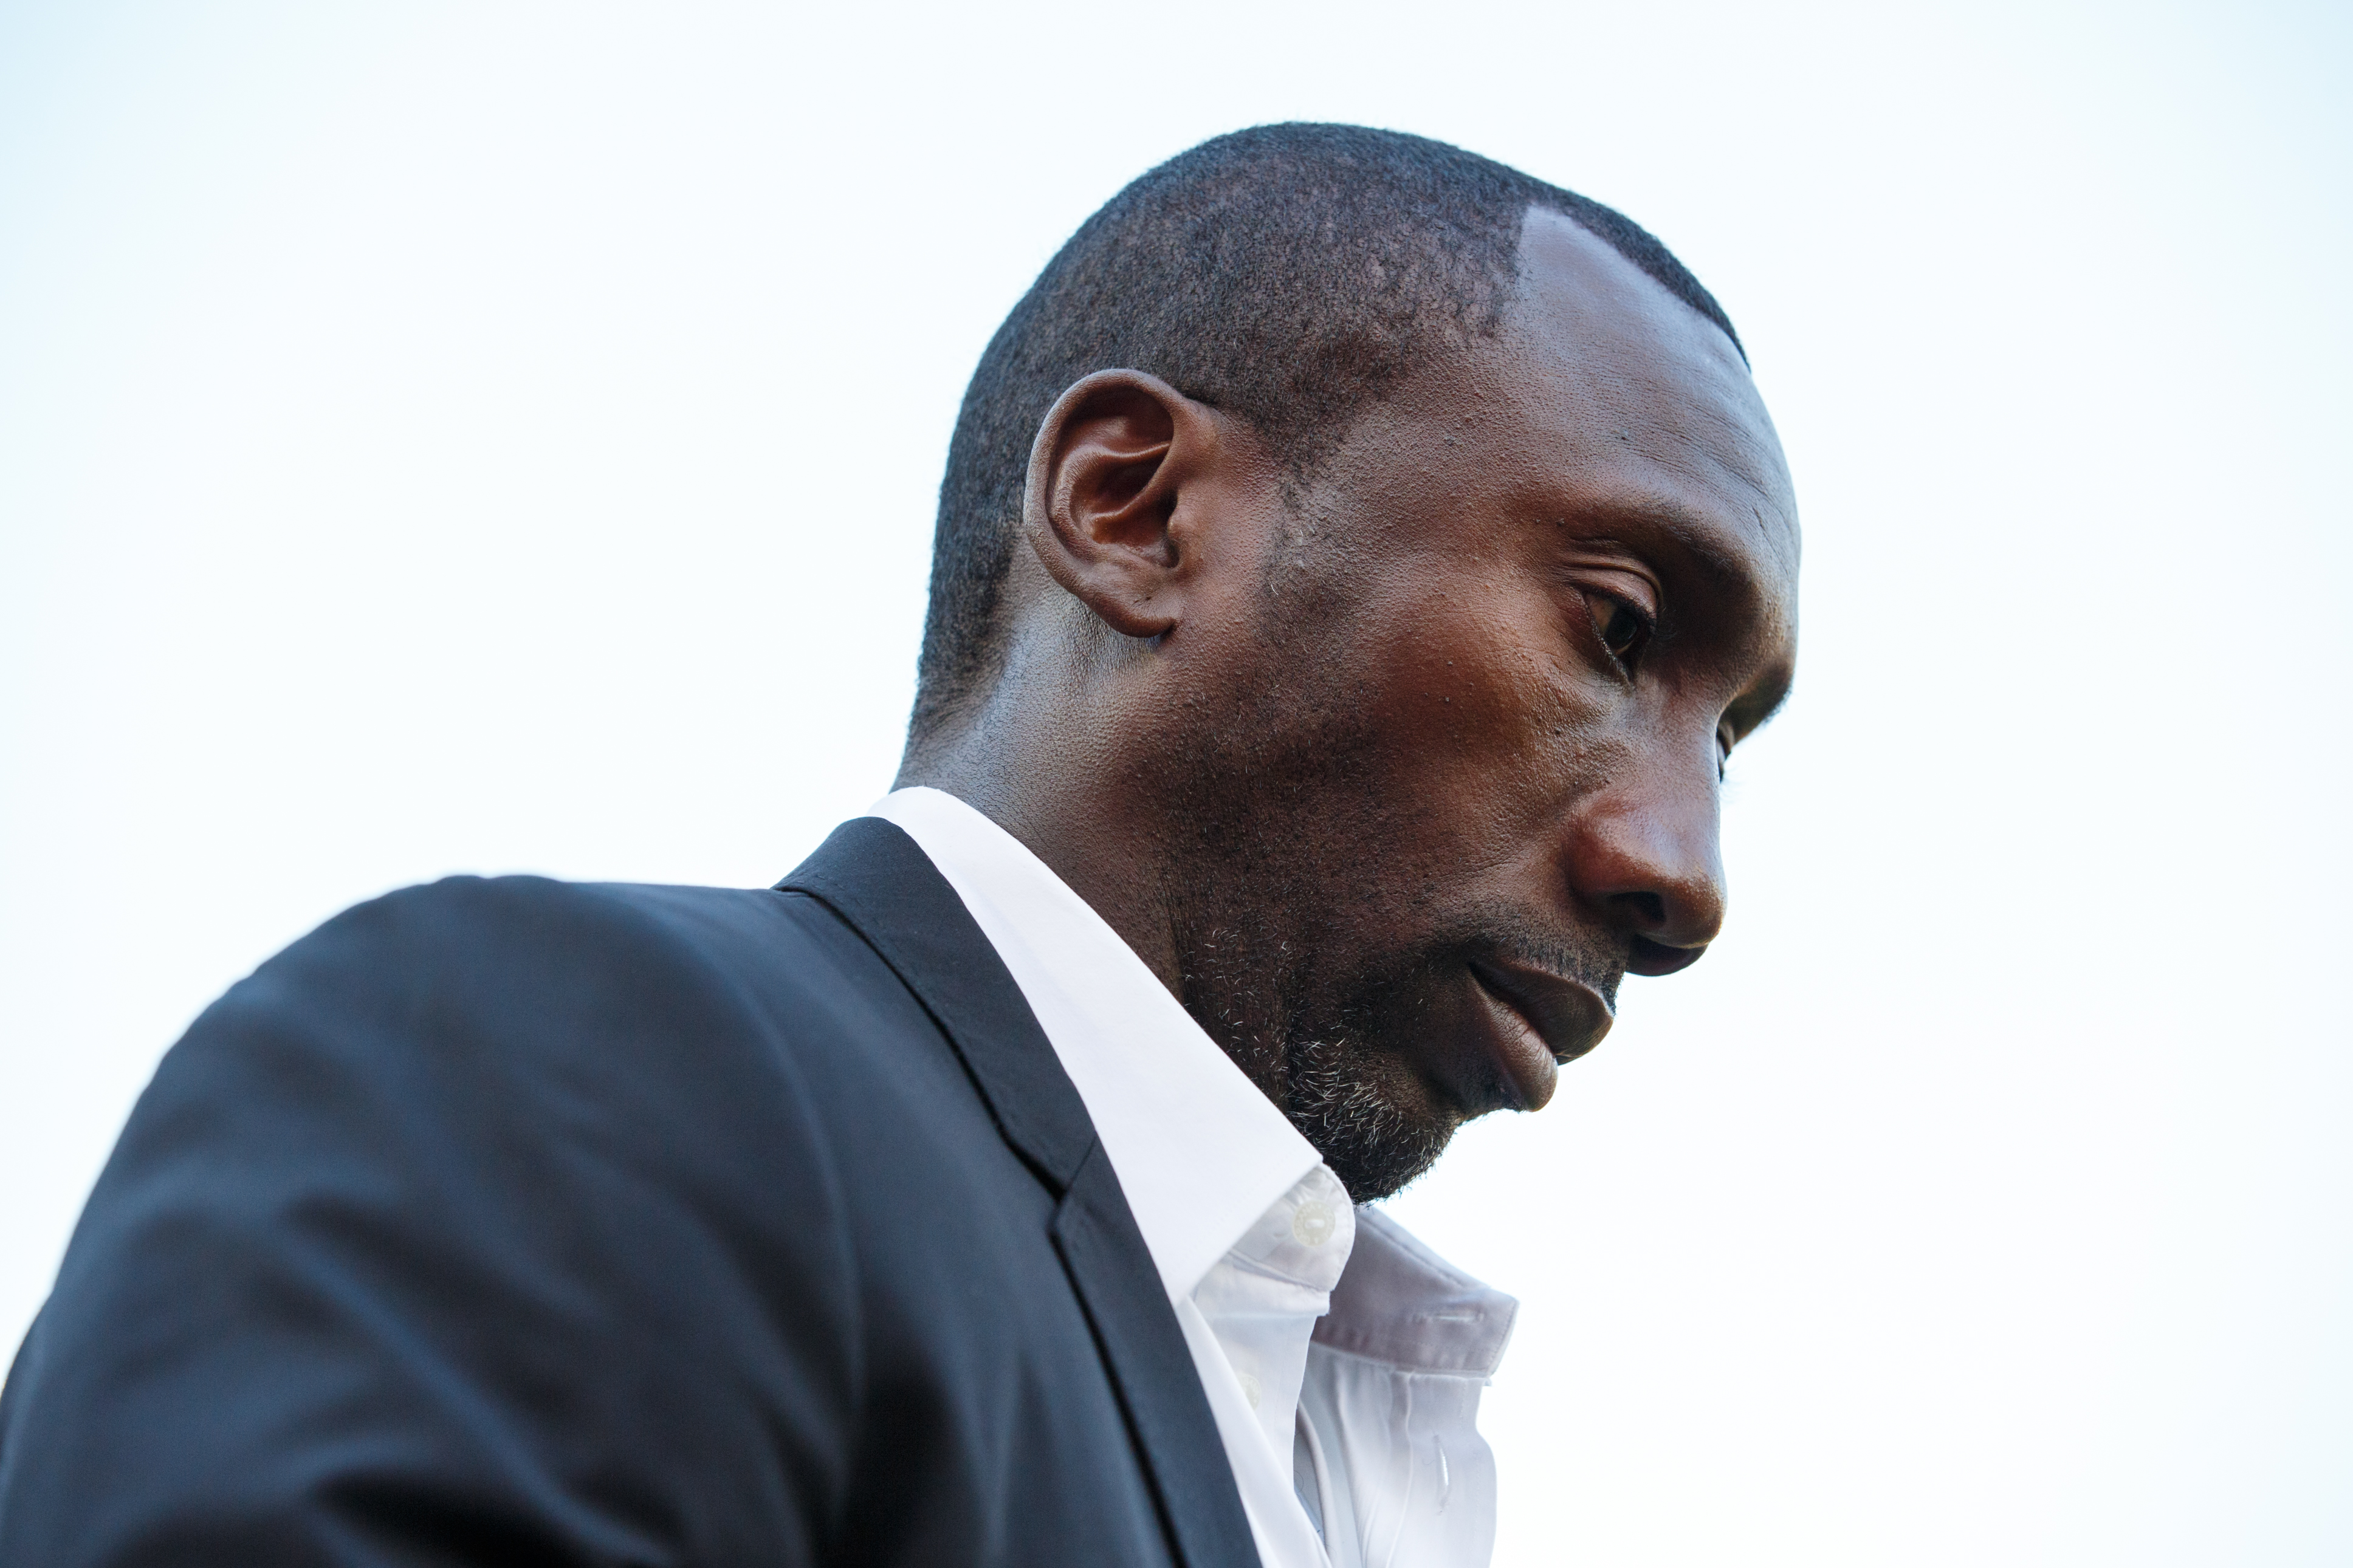 Queens Park Rangers boss Jimmy Floyd Hasselbaink denies corruption claims